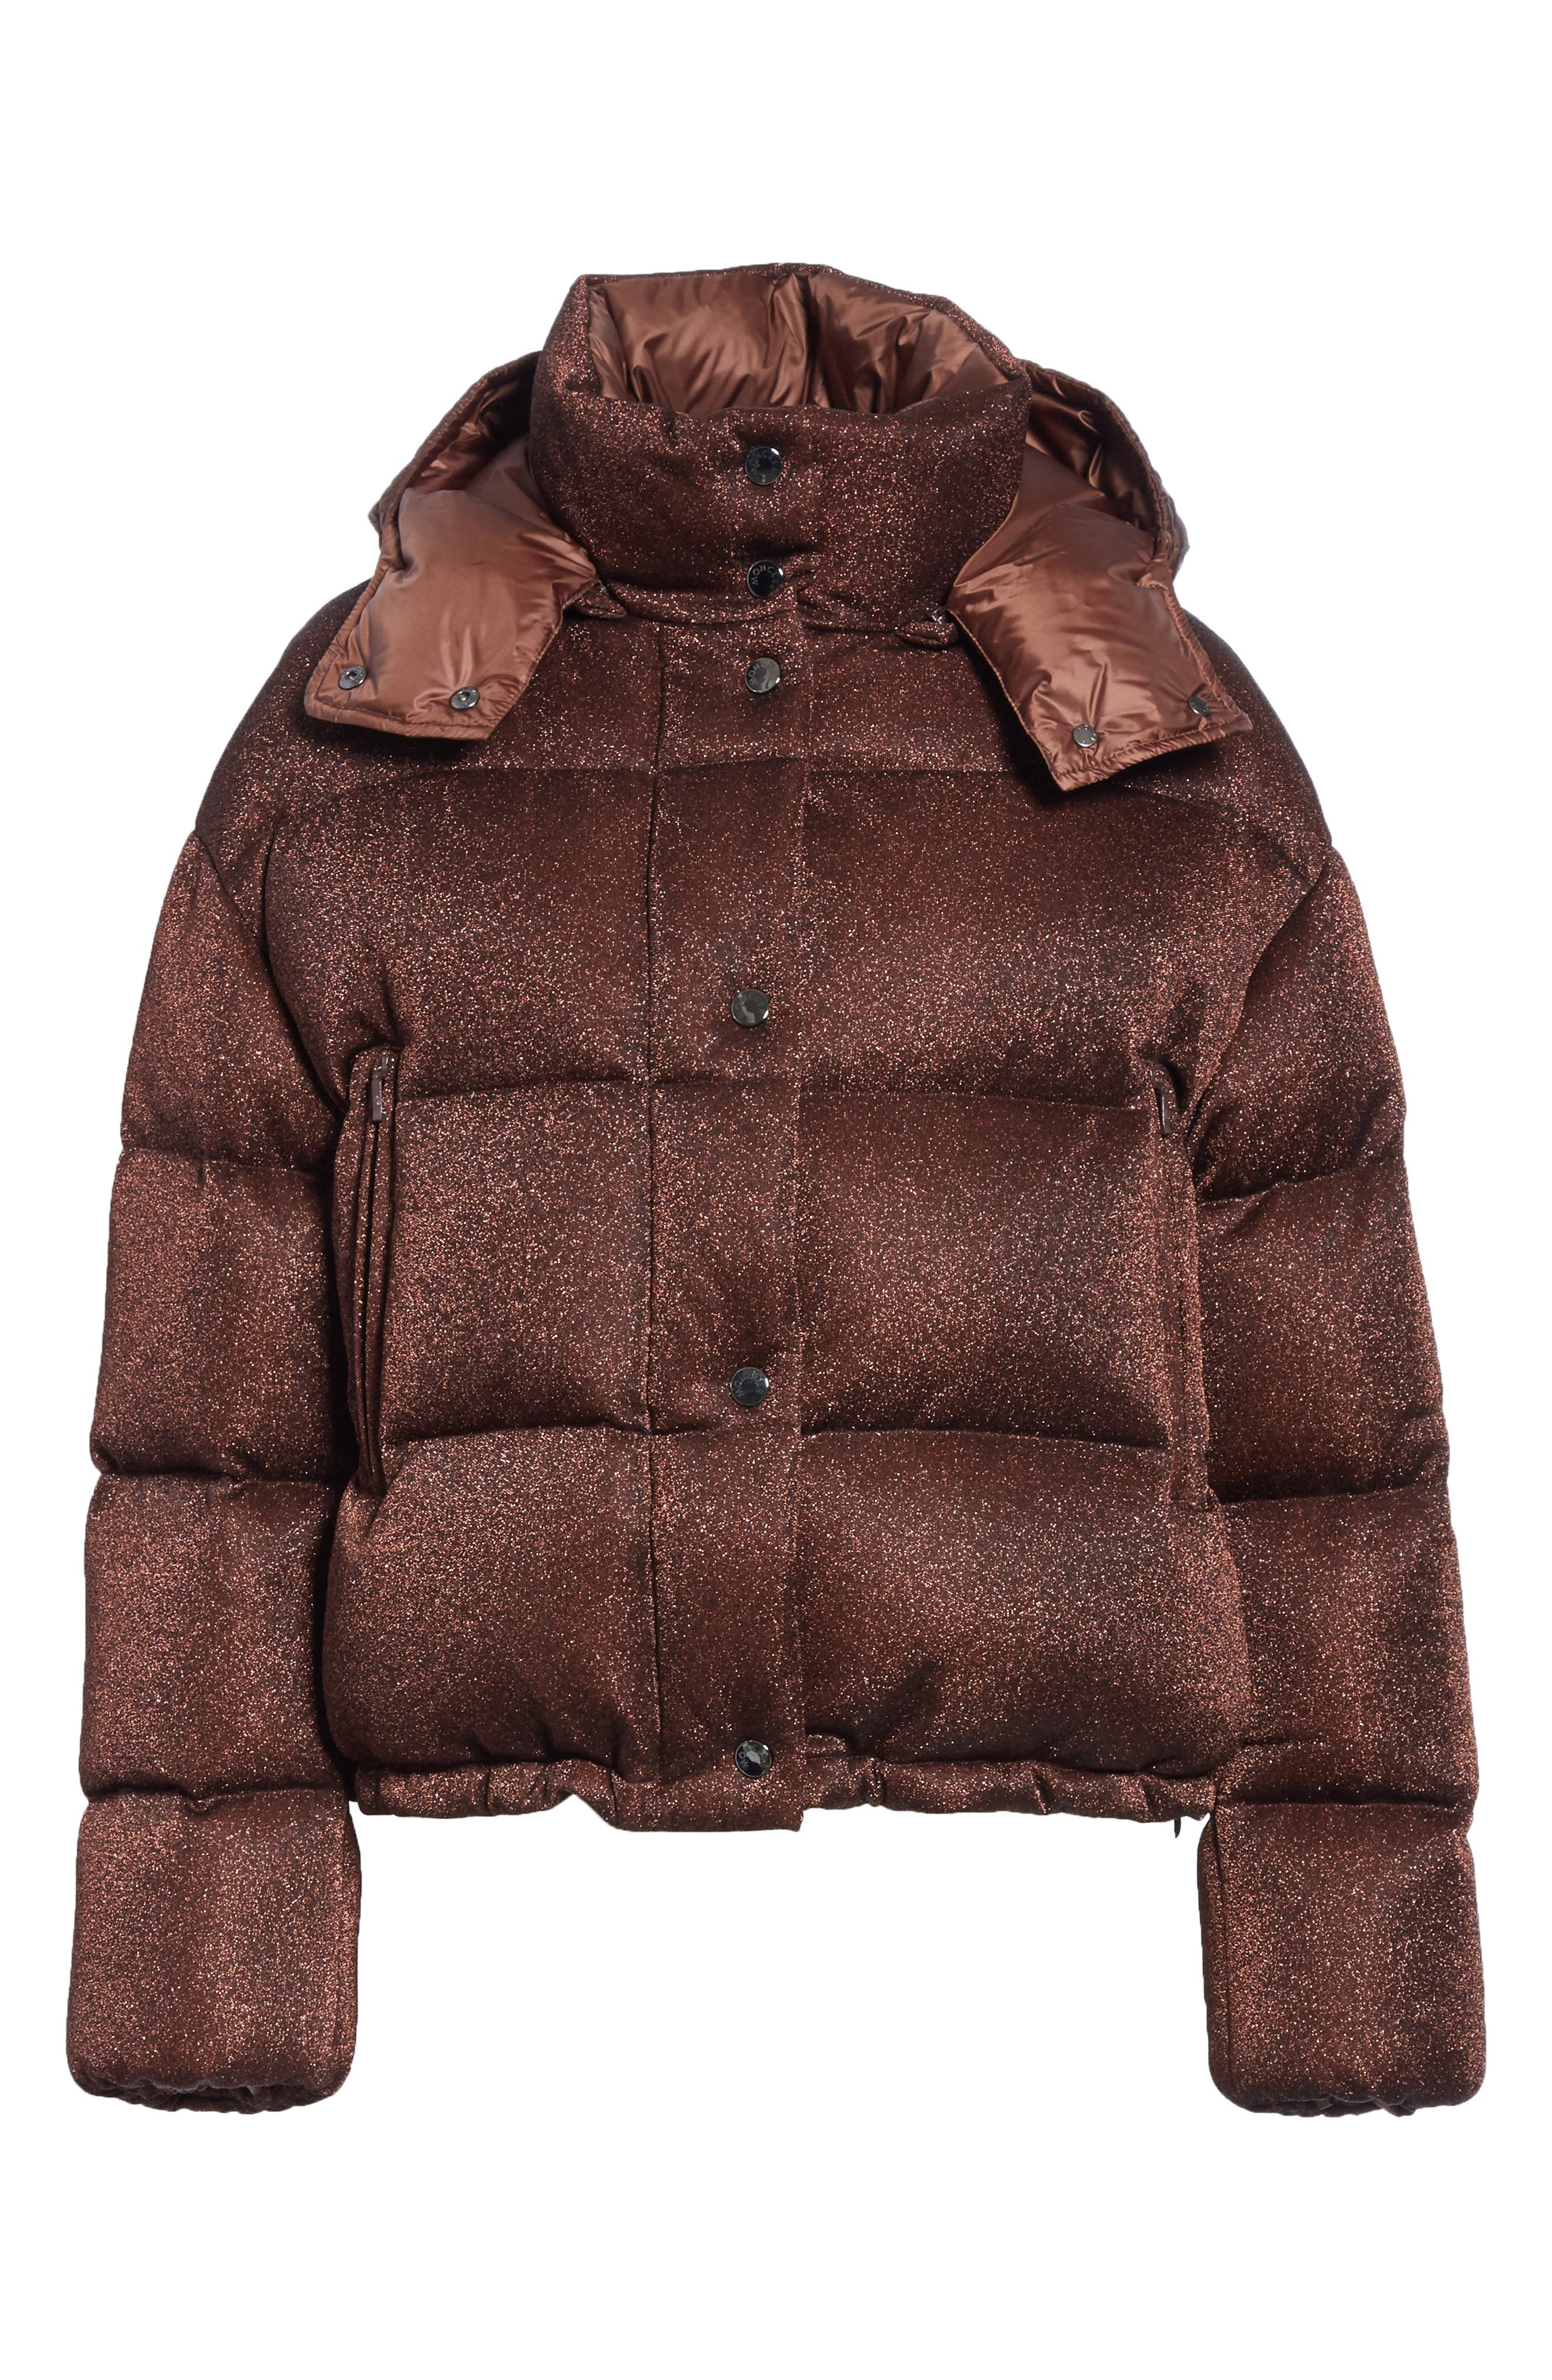 MONCLER, Caille Metallic Quilted Down Jacket, Alternate thumbnail 6, color, 224